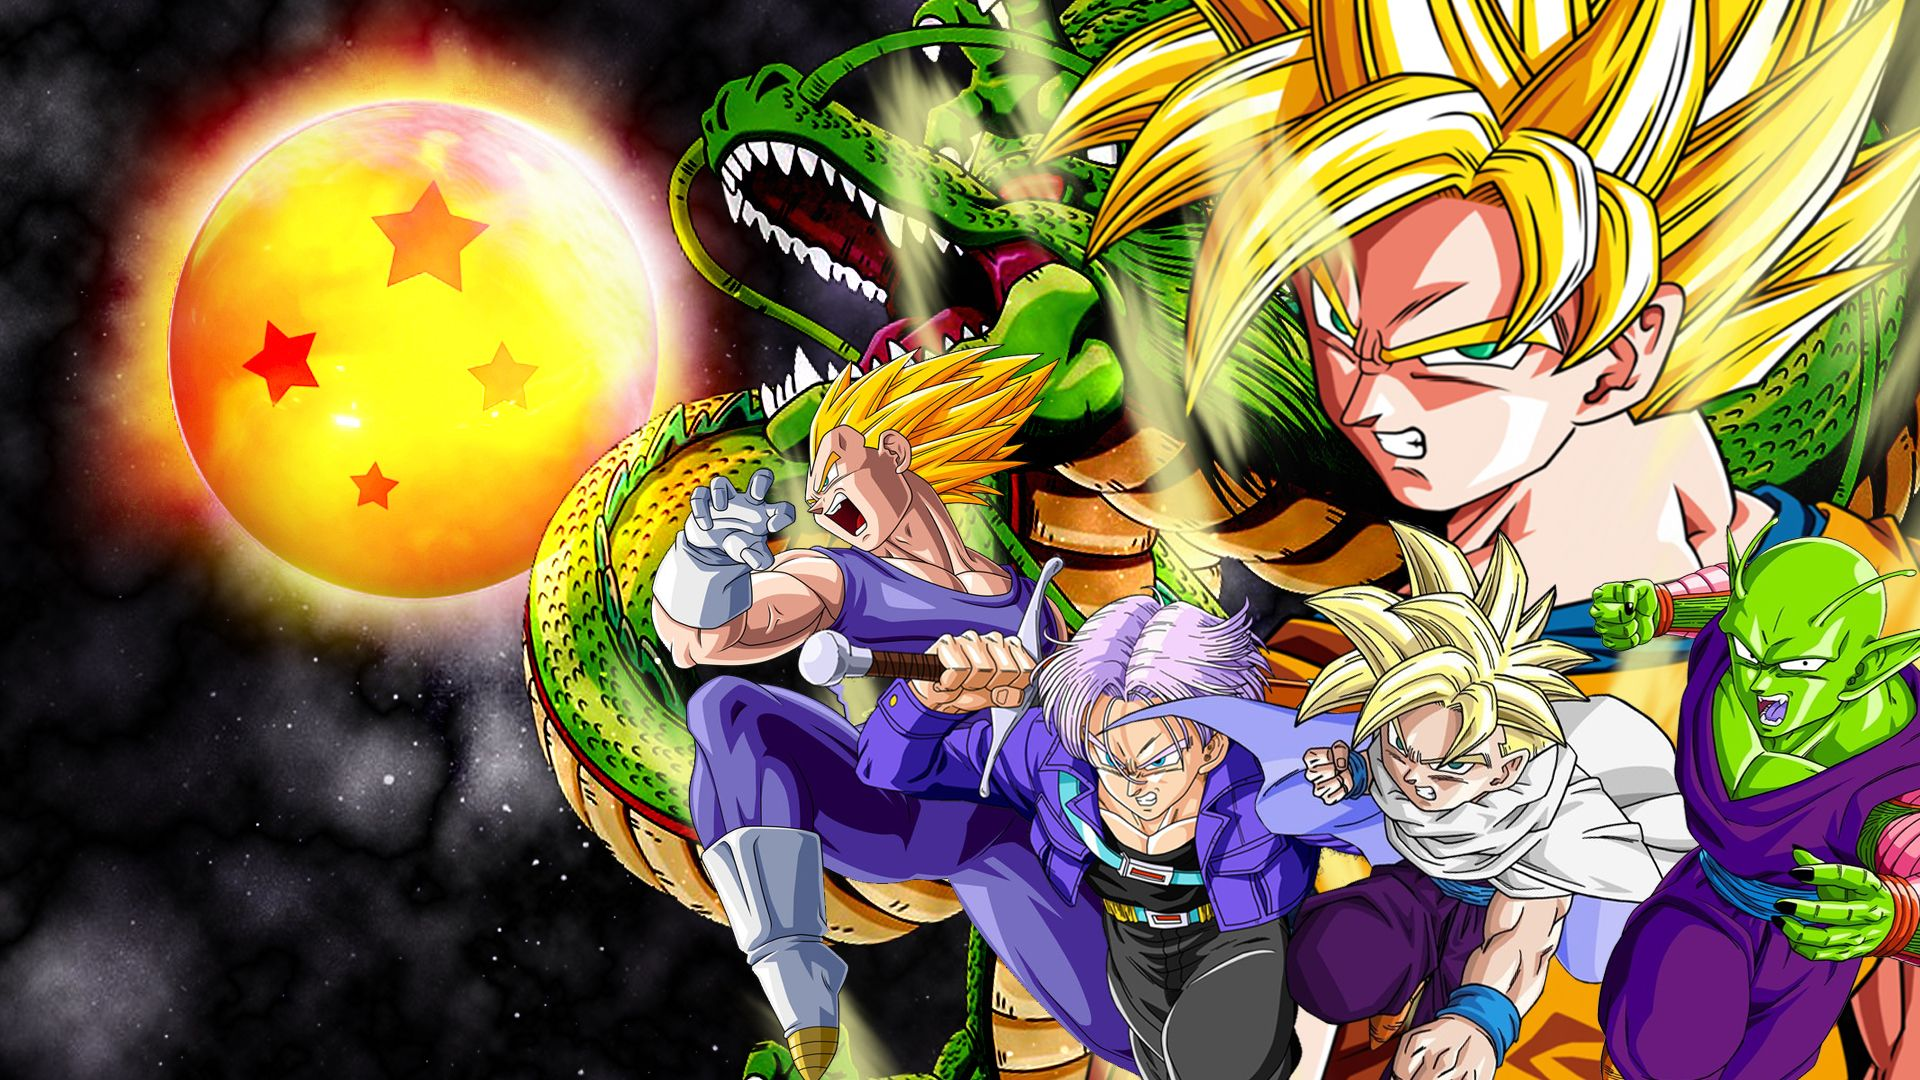 Amazing Wallpaper High Resolution Dragon Ball Z - 79fc98499b99cc4b5f6d1bbf9372923e  Perfect Image Reference_634679.jpg